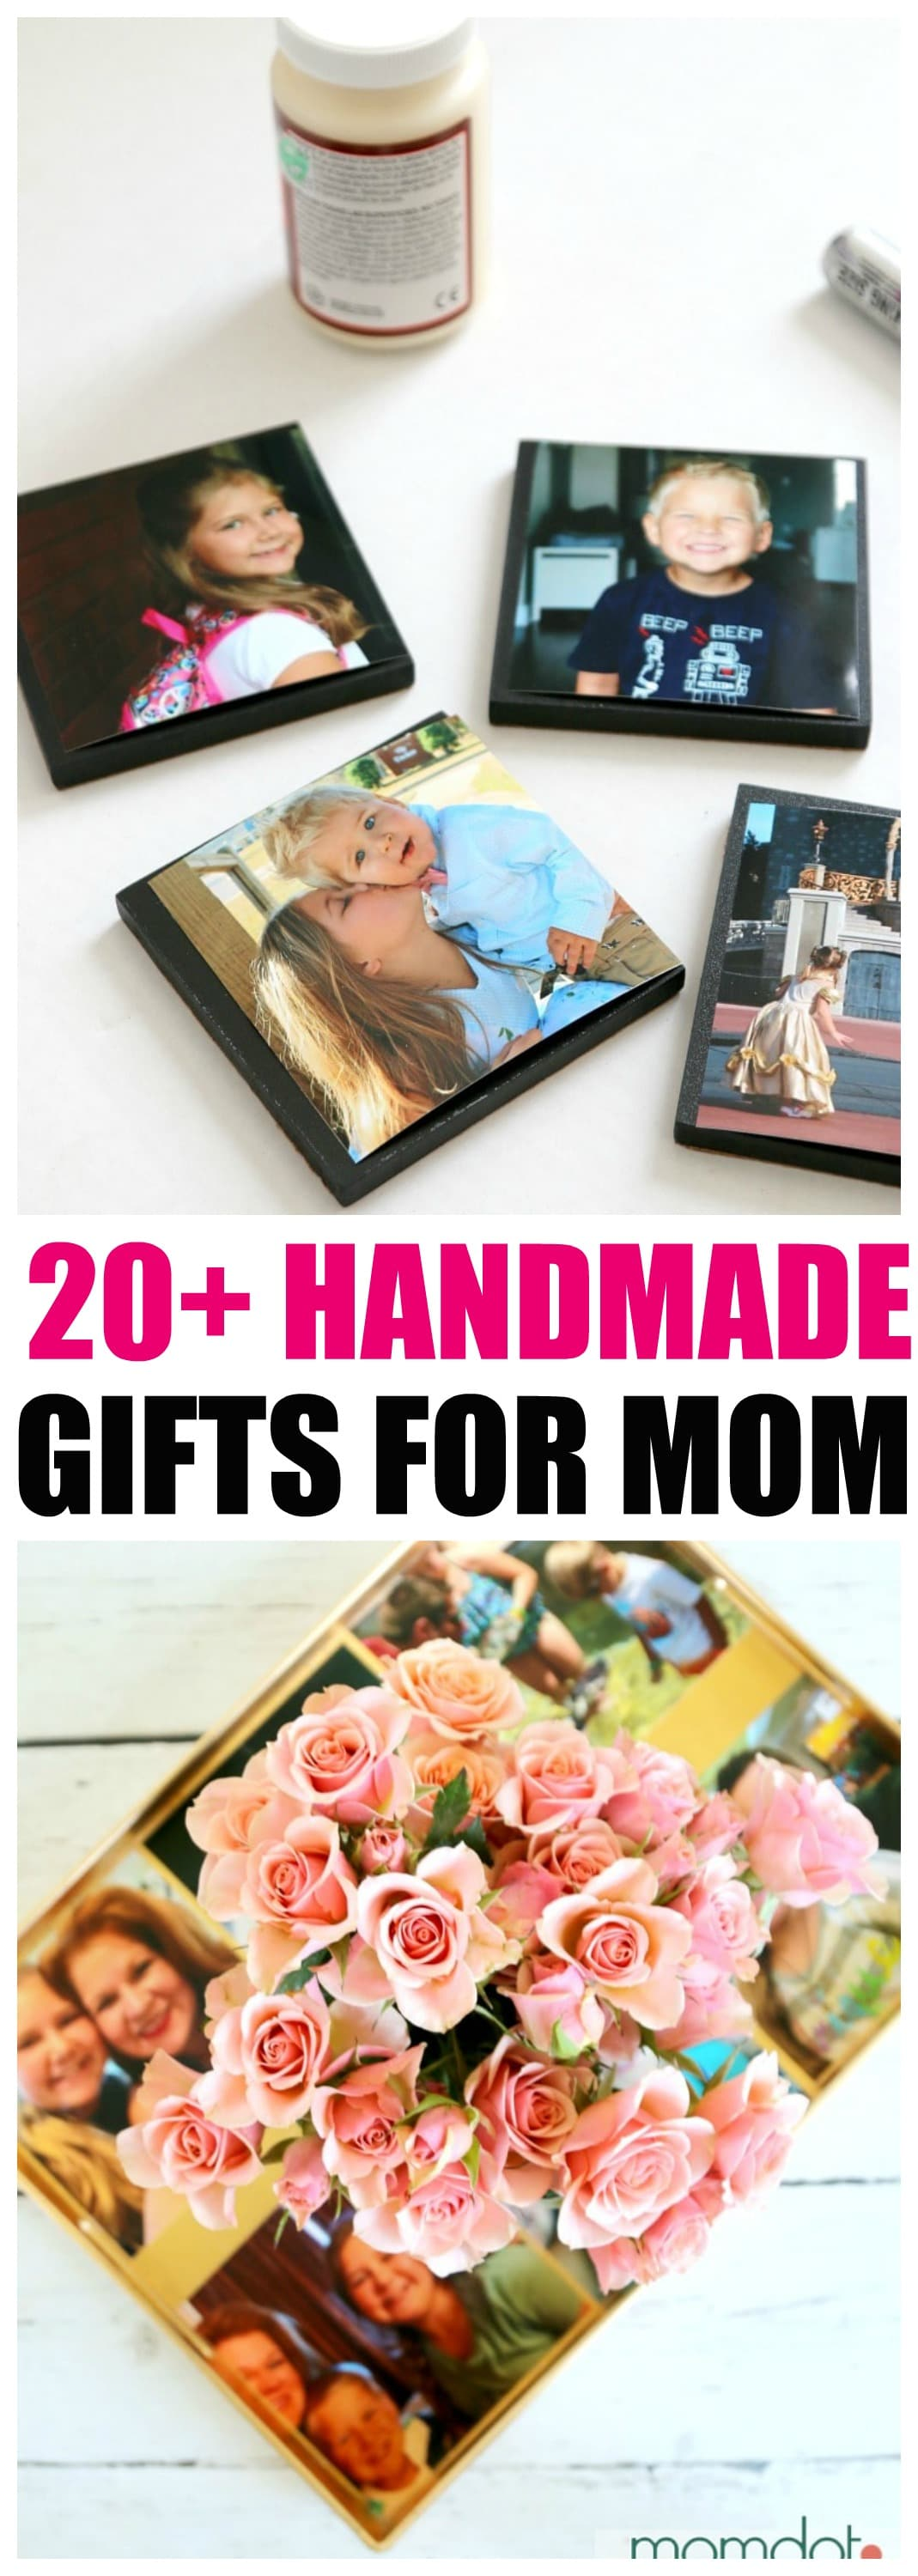 20+ Sentimental Homemade Gifts Mom Will LOVE